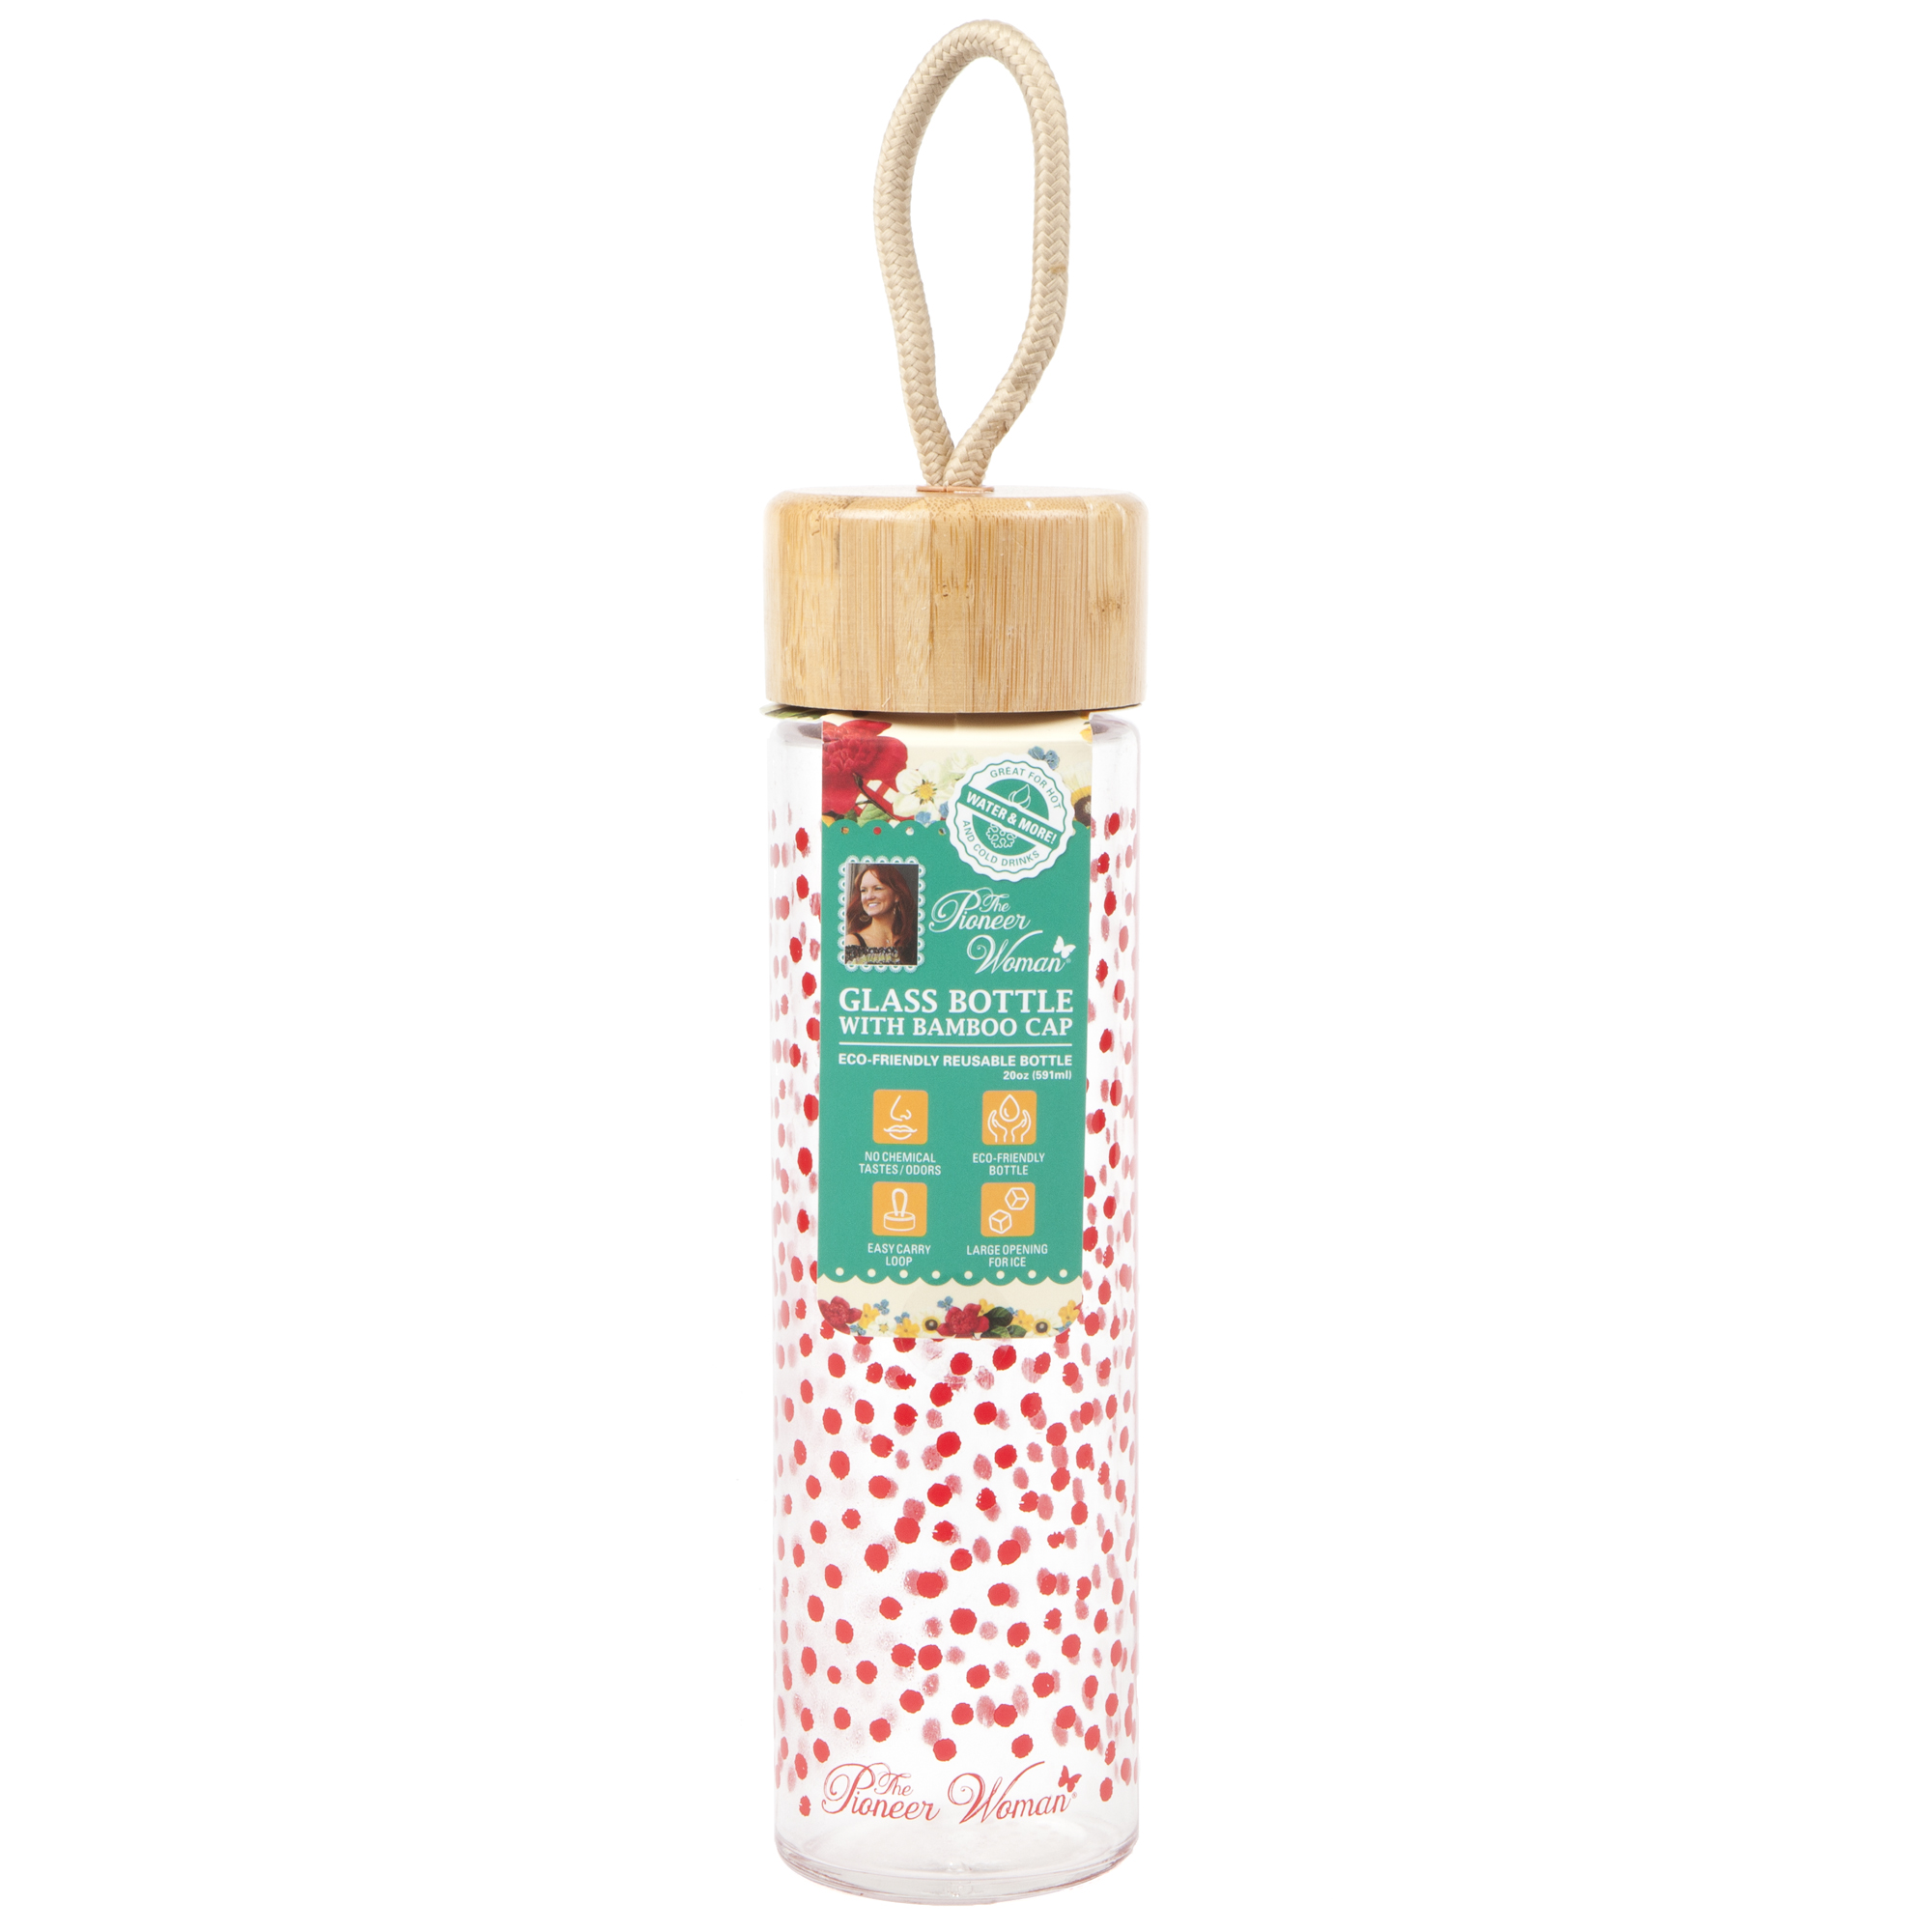 The Pioneer Woman 20oz Glass Water Bottle with Bamboo Cap- Red Polka Dots